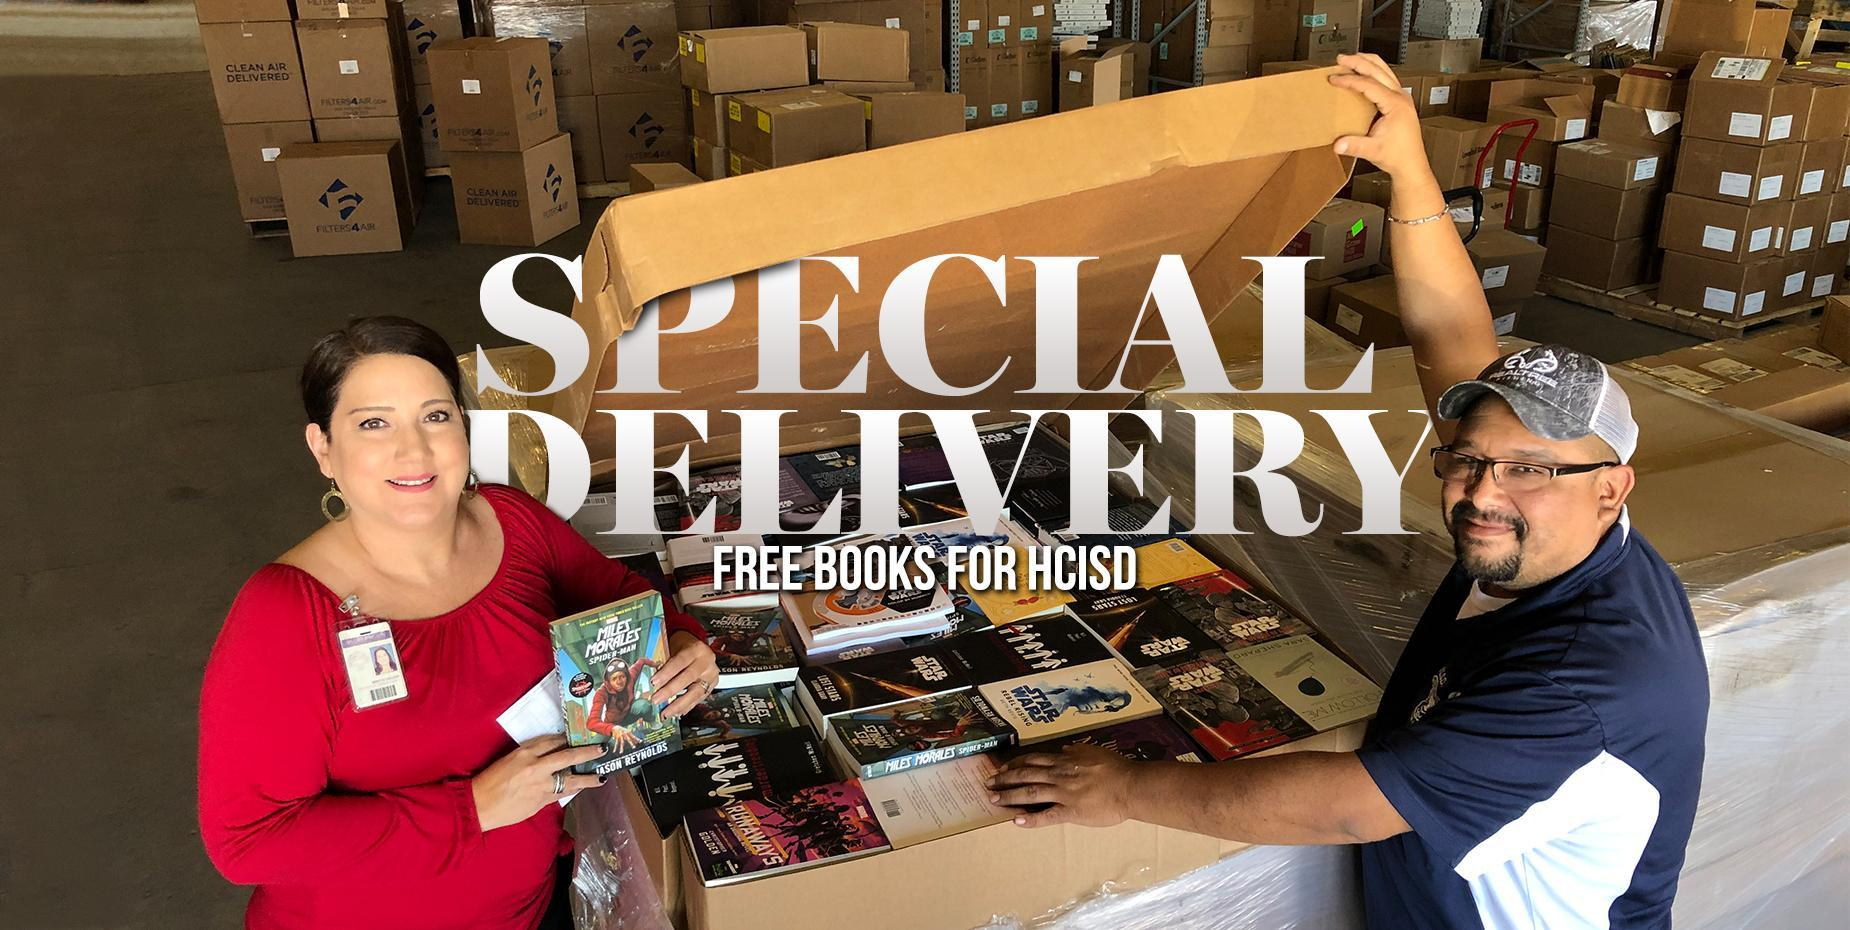 SPECIAL DELIVERY FREE BOOKS FOR HCISD